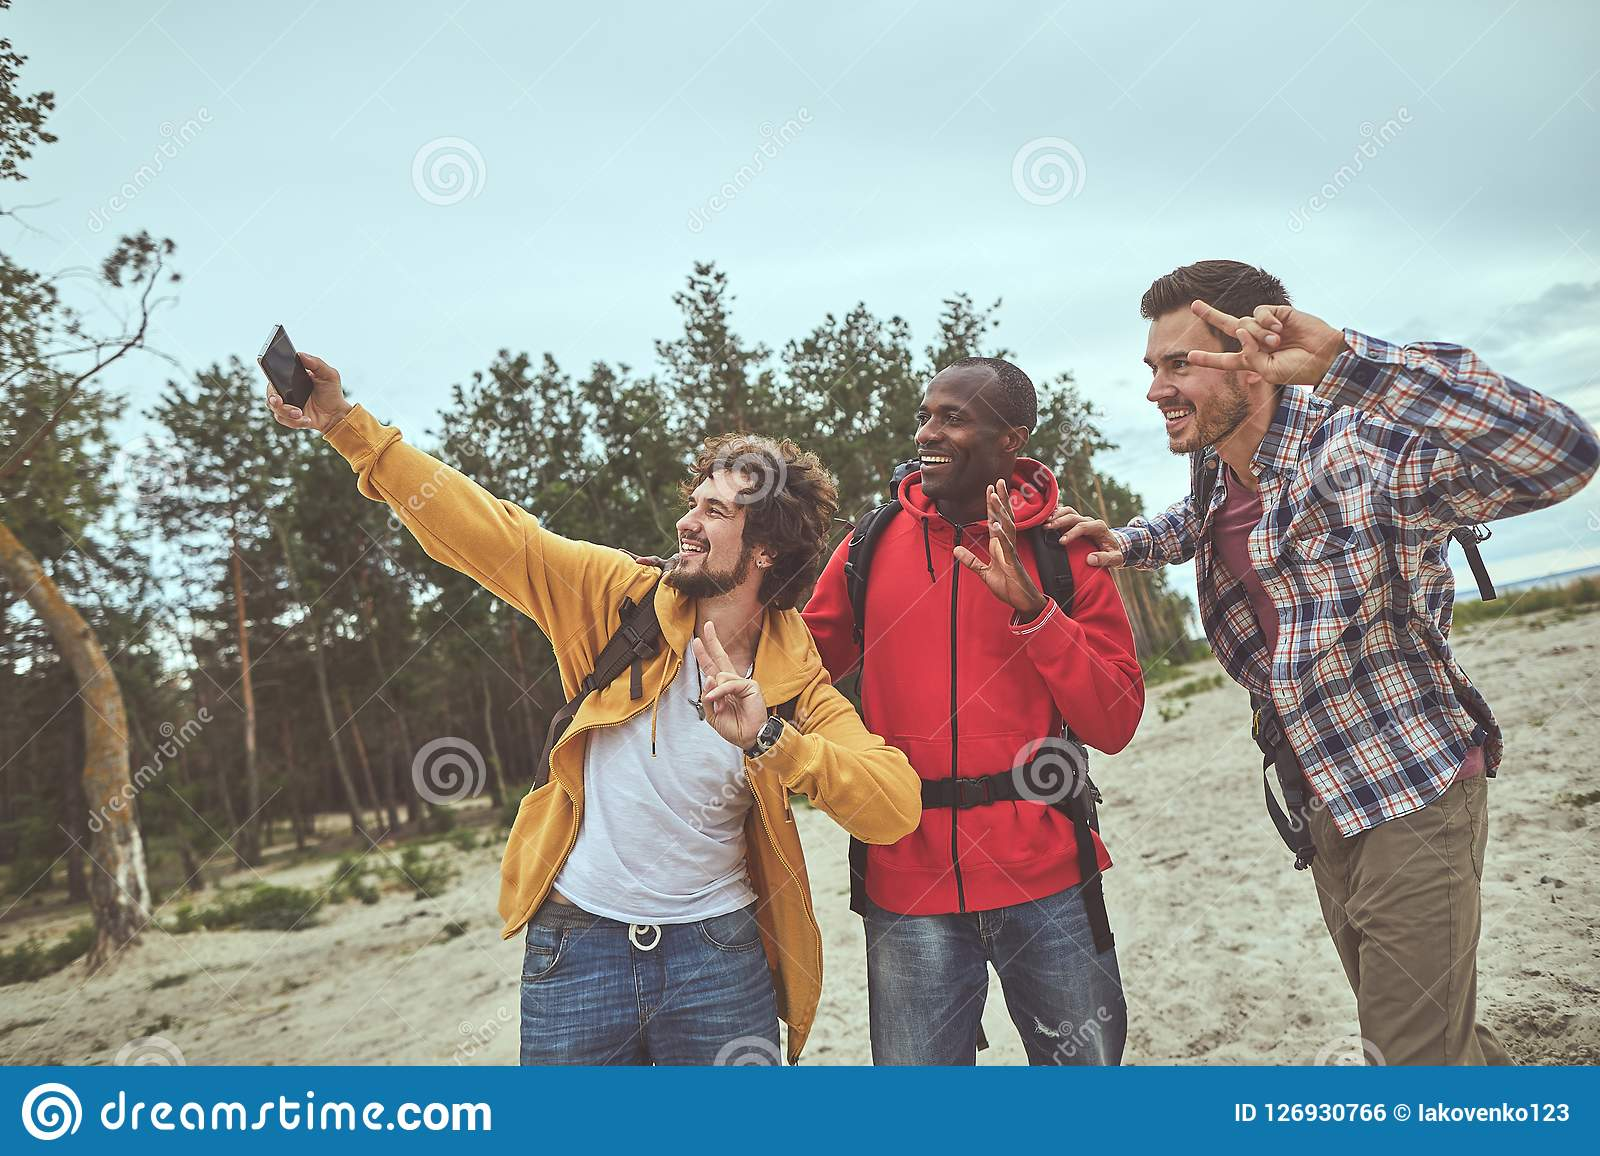 Smile guys using gadget during holiday journey